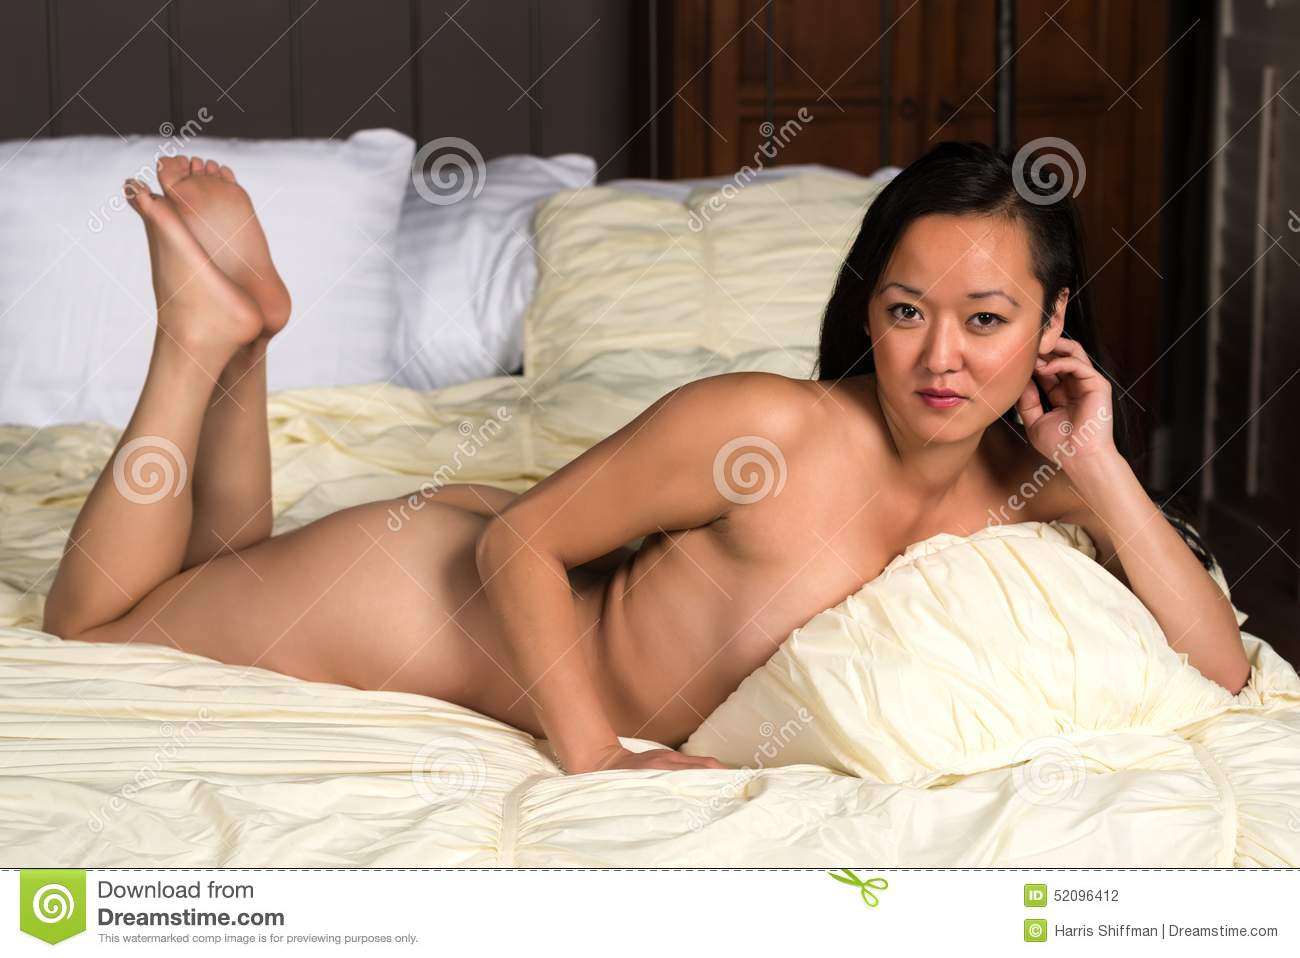 north korean girl naked young